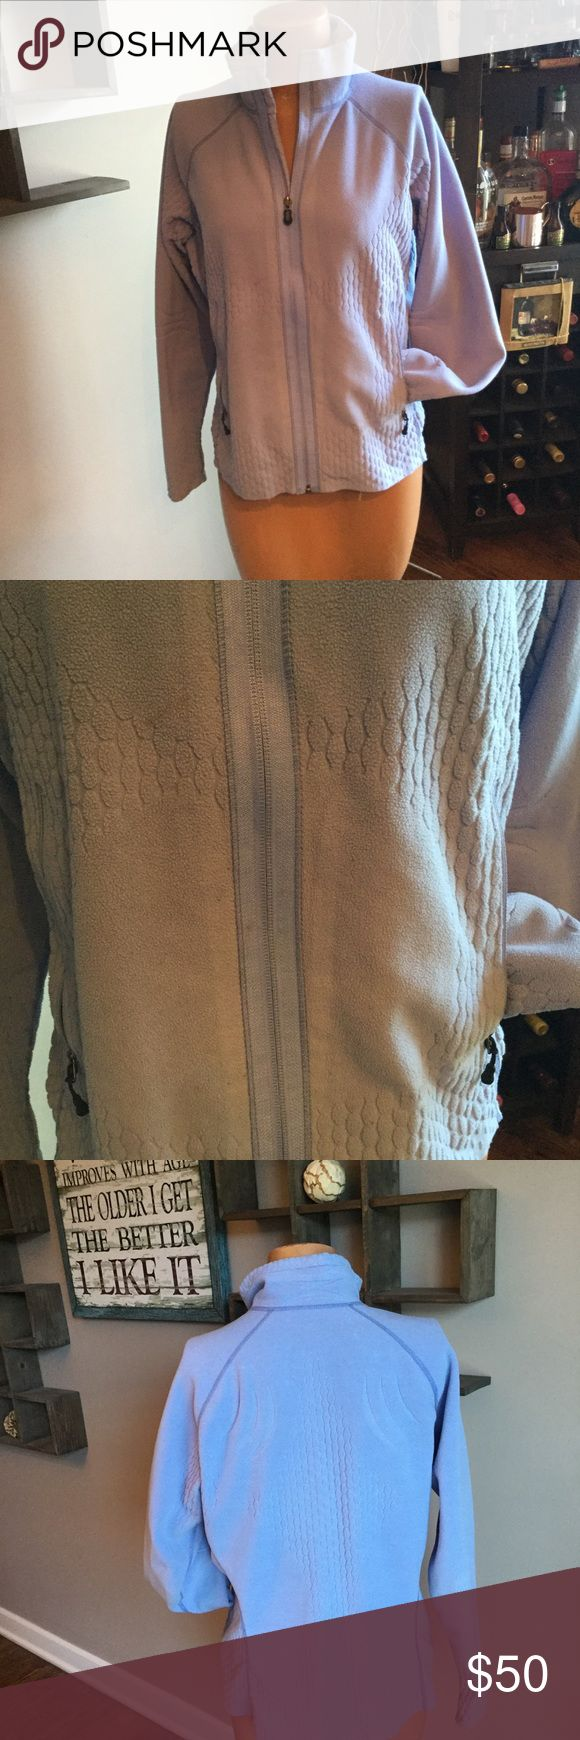 Patagonia fleece jacket Woman's fleece Patagonia jacket does have a couple spots and it needs to be laundered but I don't want to wash one some people are allergic to certain products have any questions please feel free to ask thank you for looking and happy poshing Patagonia Jackets & Coats